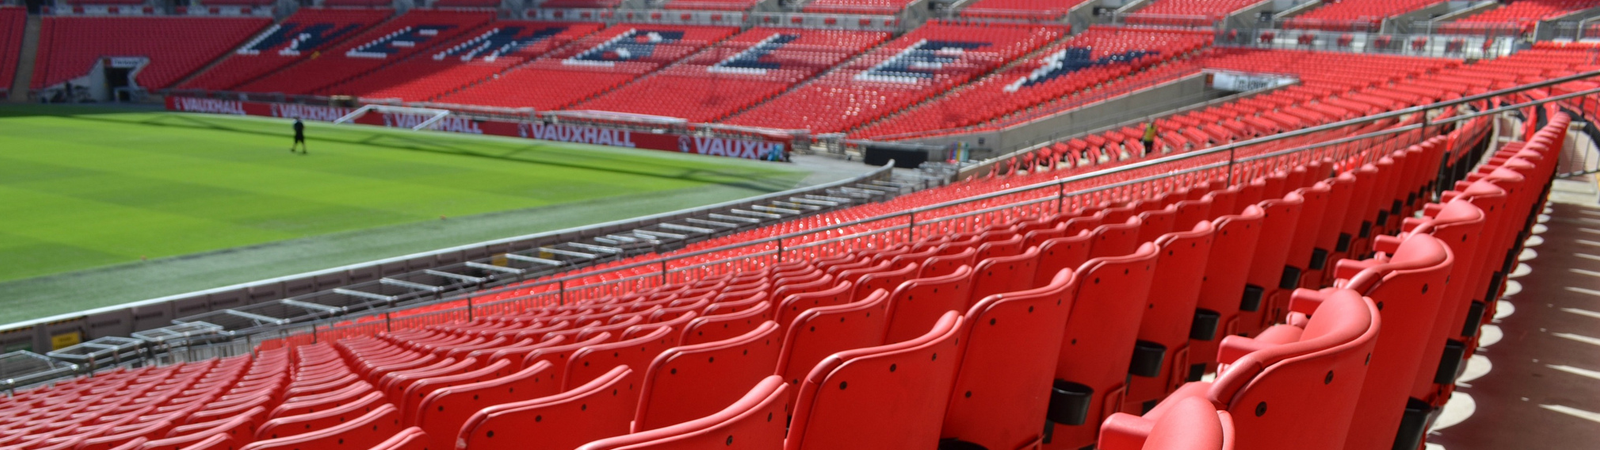 Venue: Wembley Stadium